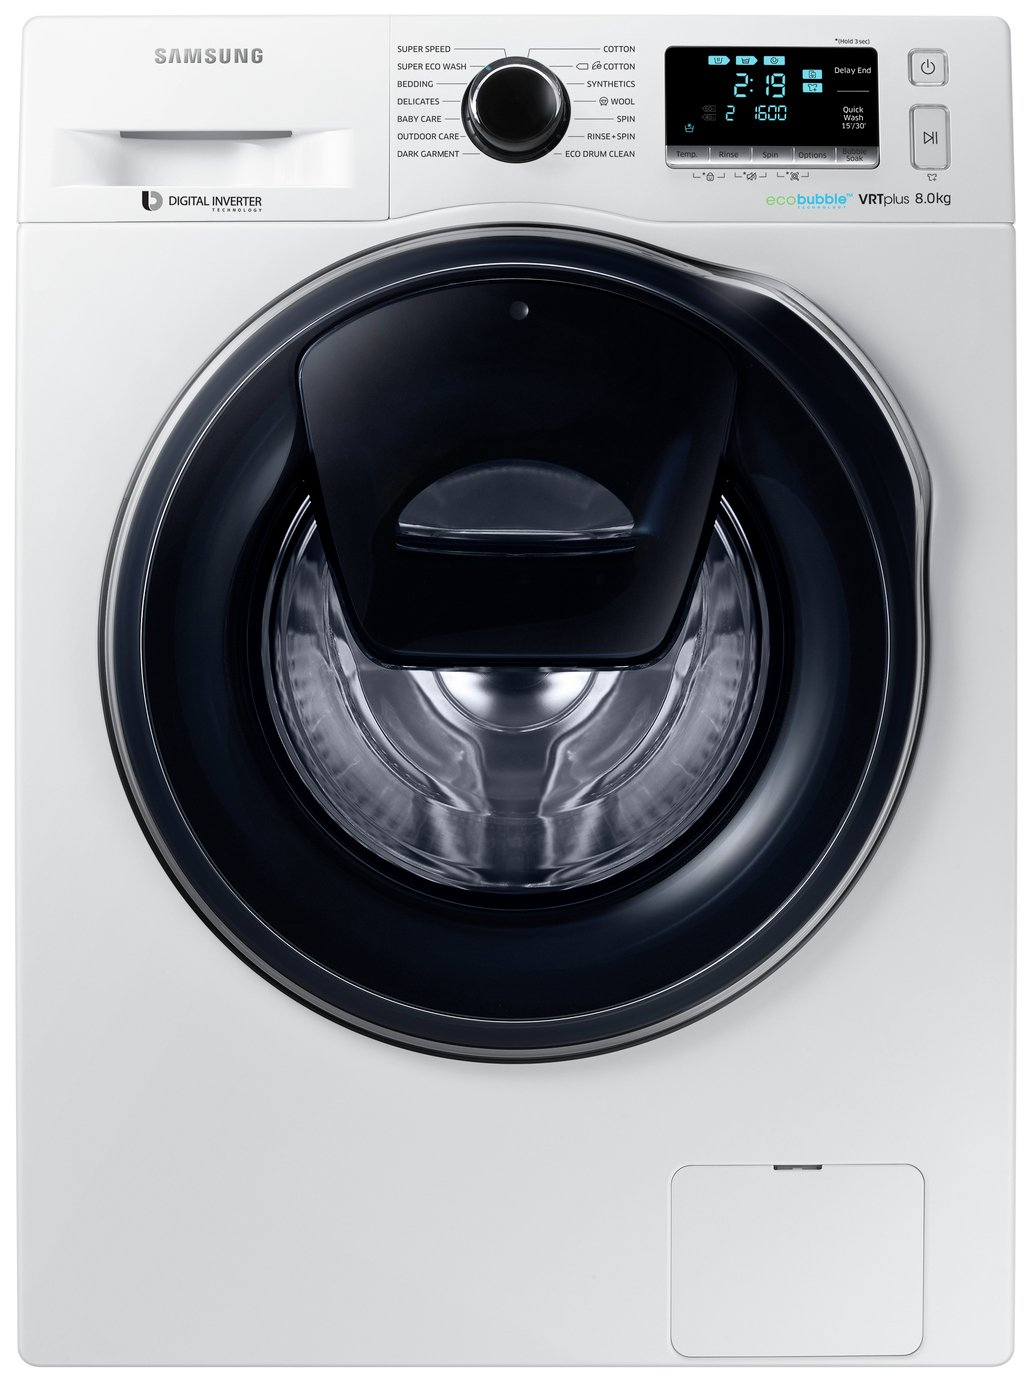 Samsung - AddWash WW80K6610QW 8Kg 1600 Spin - Washing Machine from Samsung